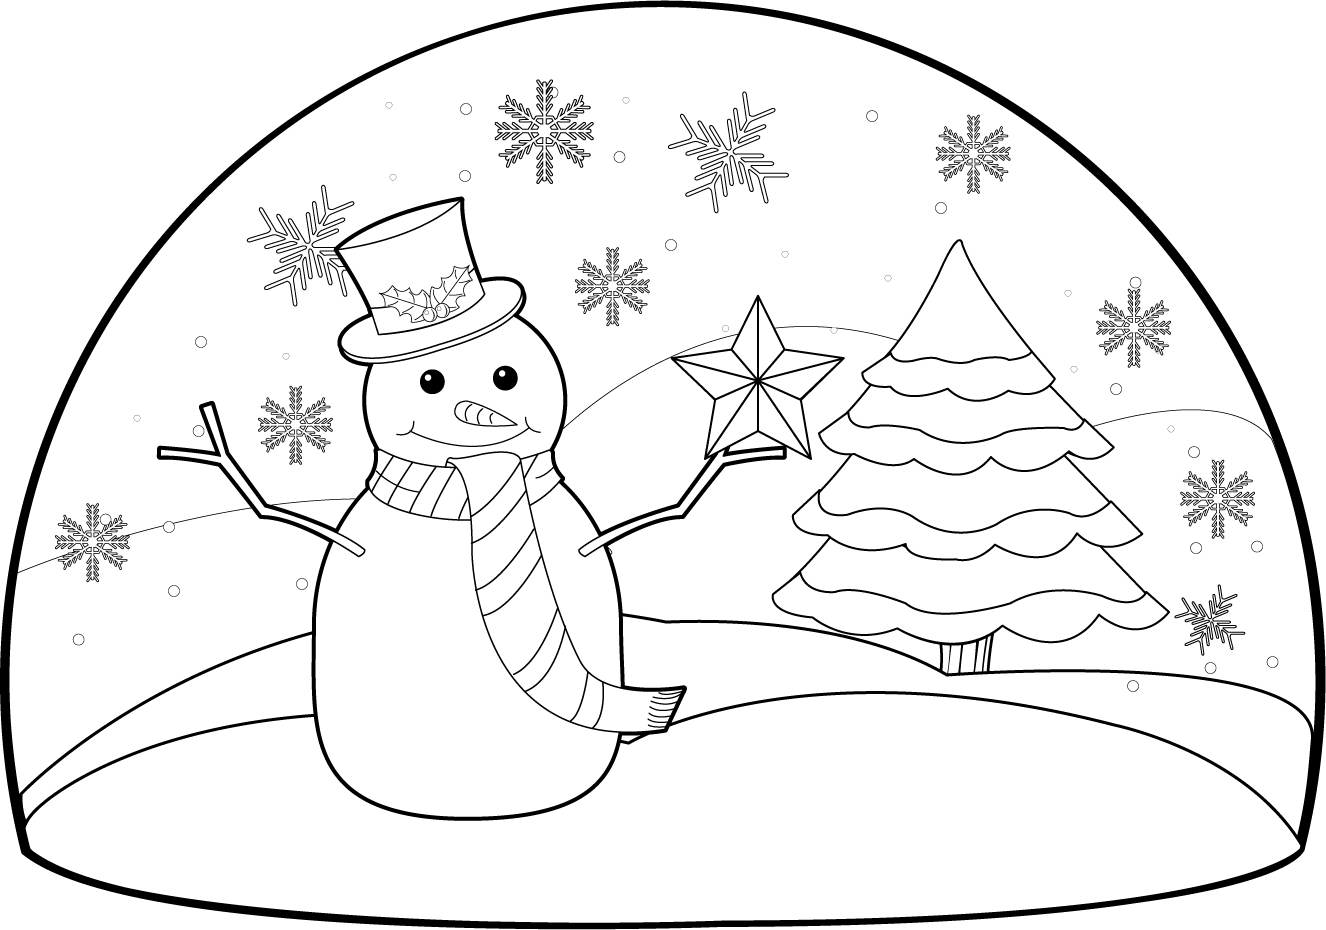 Christmas scene clipart black and white image transparent stock 28+ Collection of Christmas Scenes Clipart Black And White | High ... image transparent stock